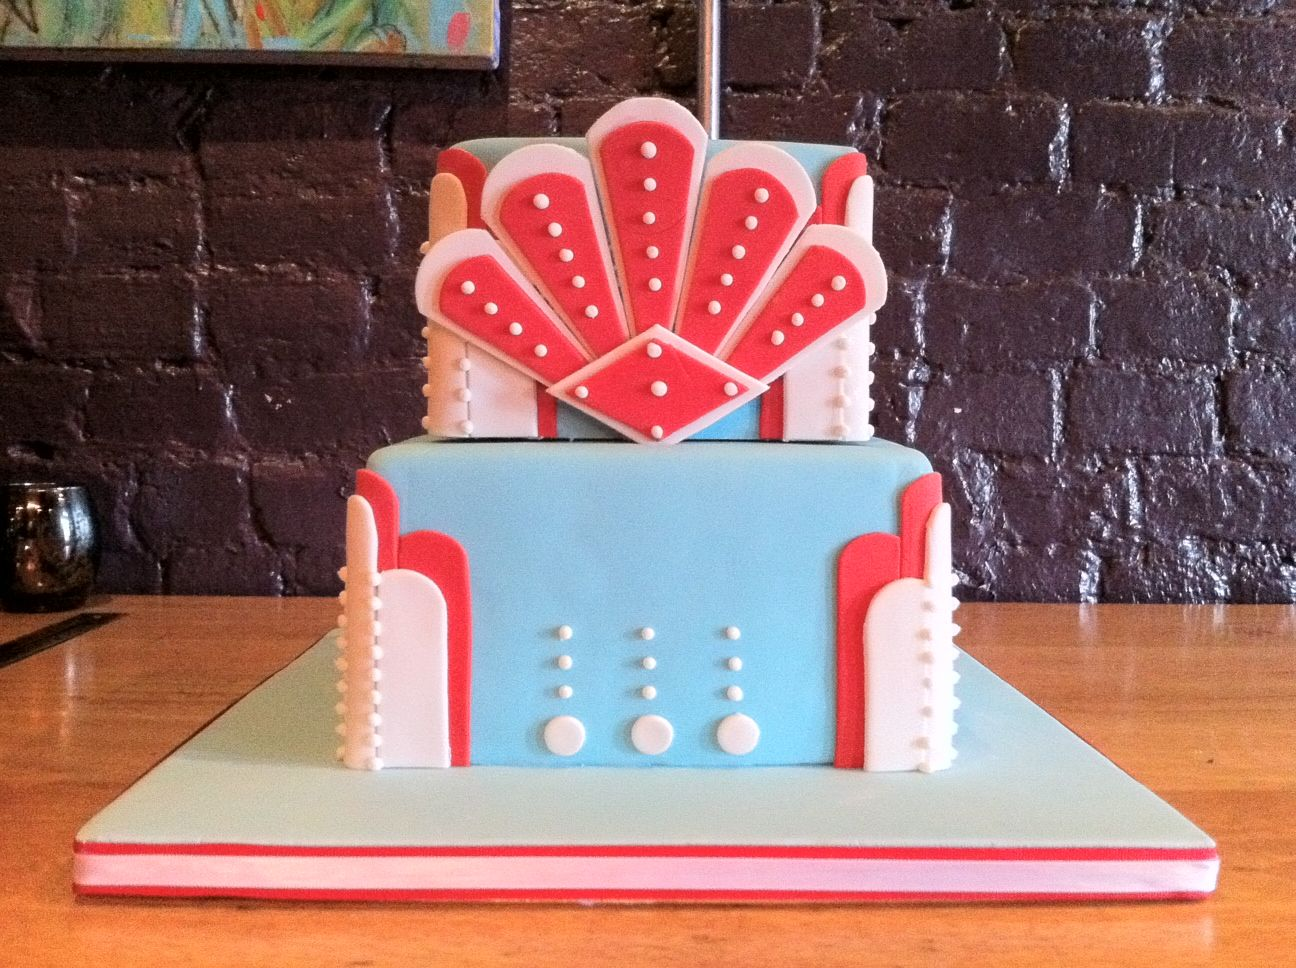 Art Deco Wedding Cake By Renay Zamora @ Sweetface Cakes, Nashville, TN.  Delivered